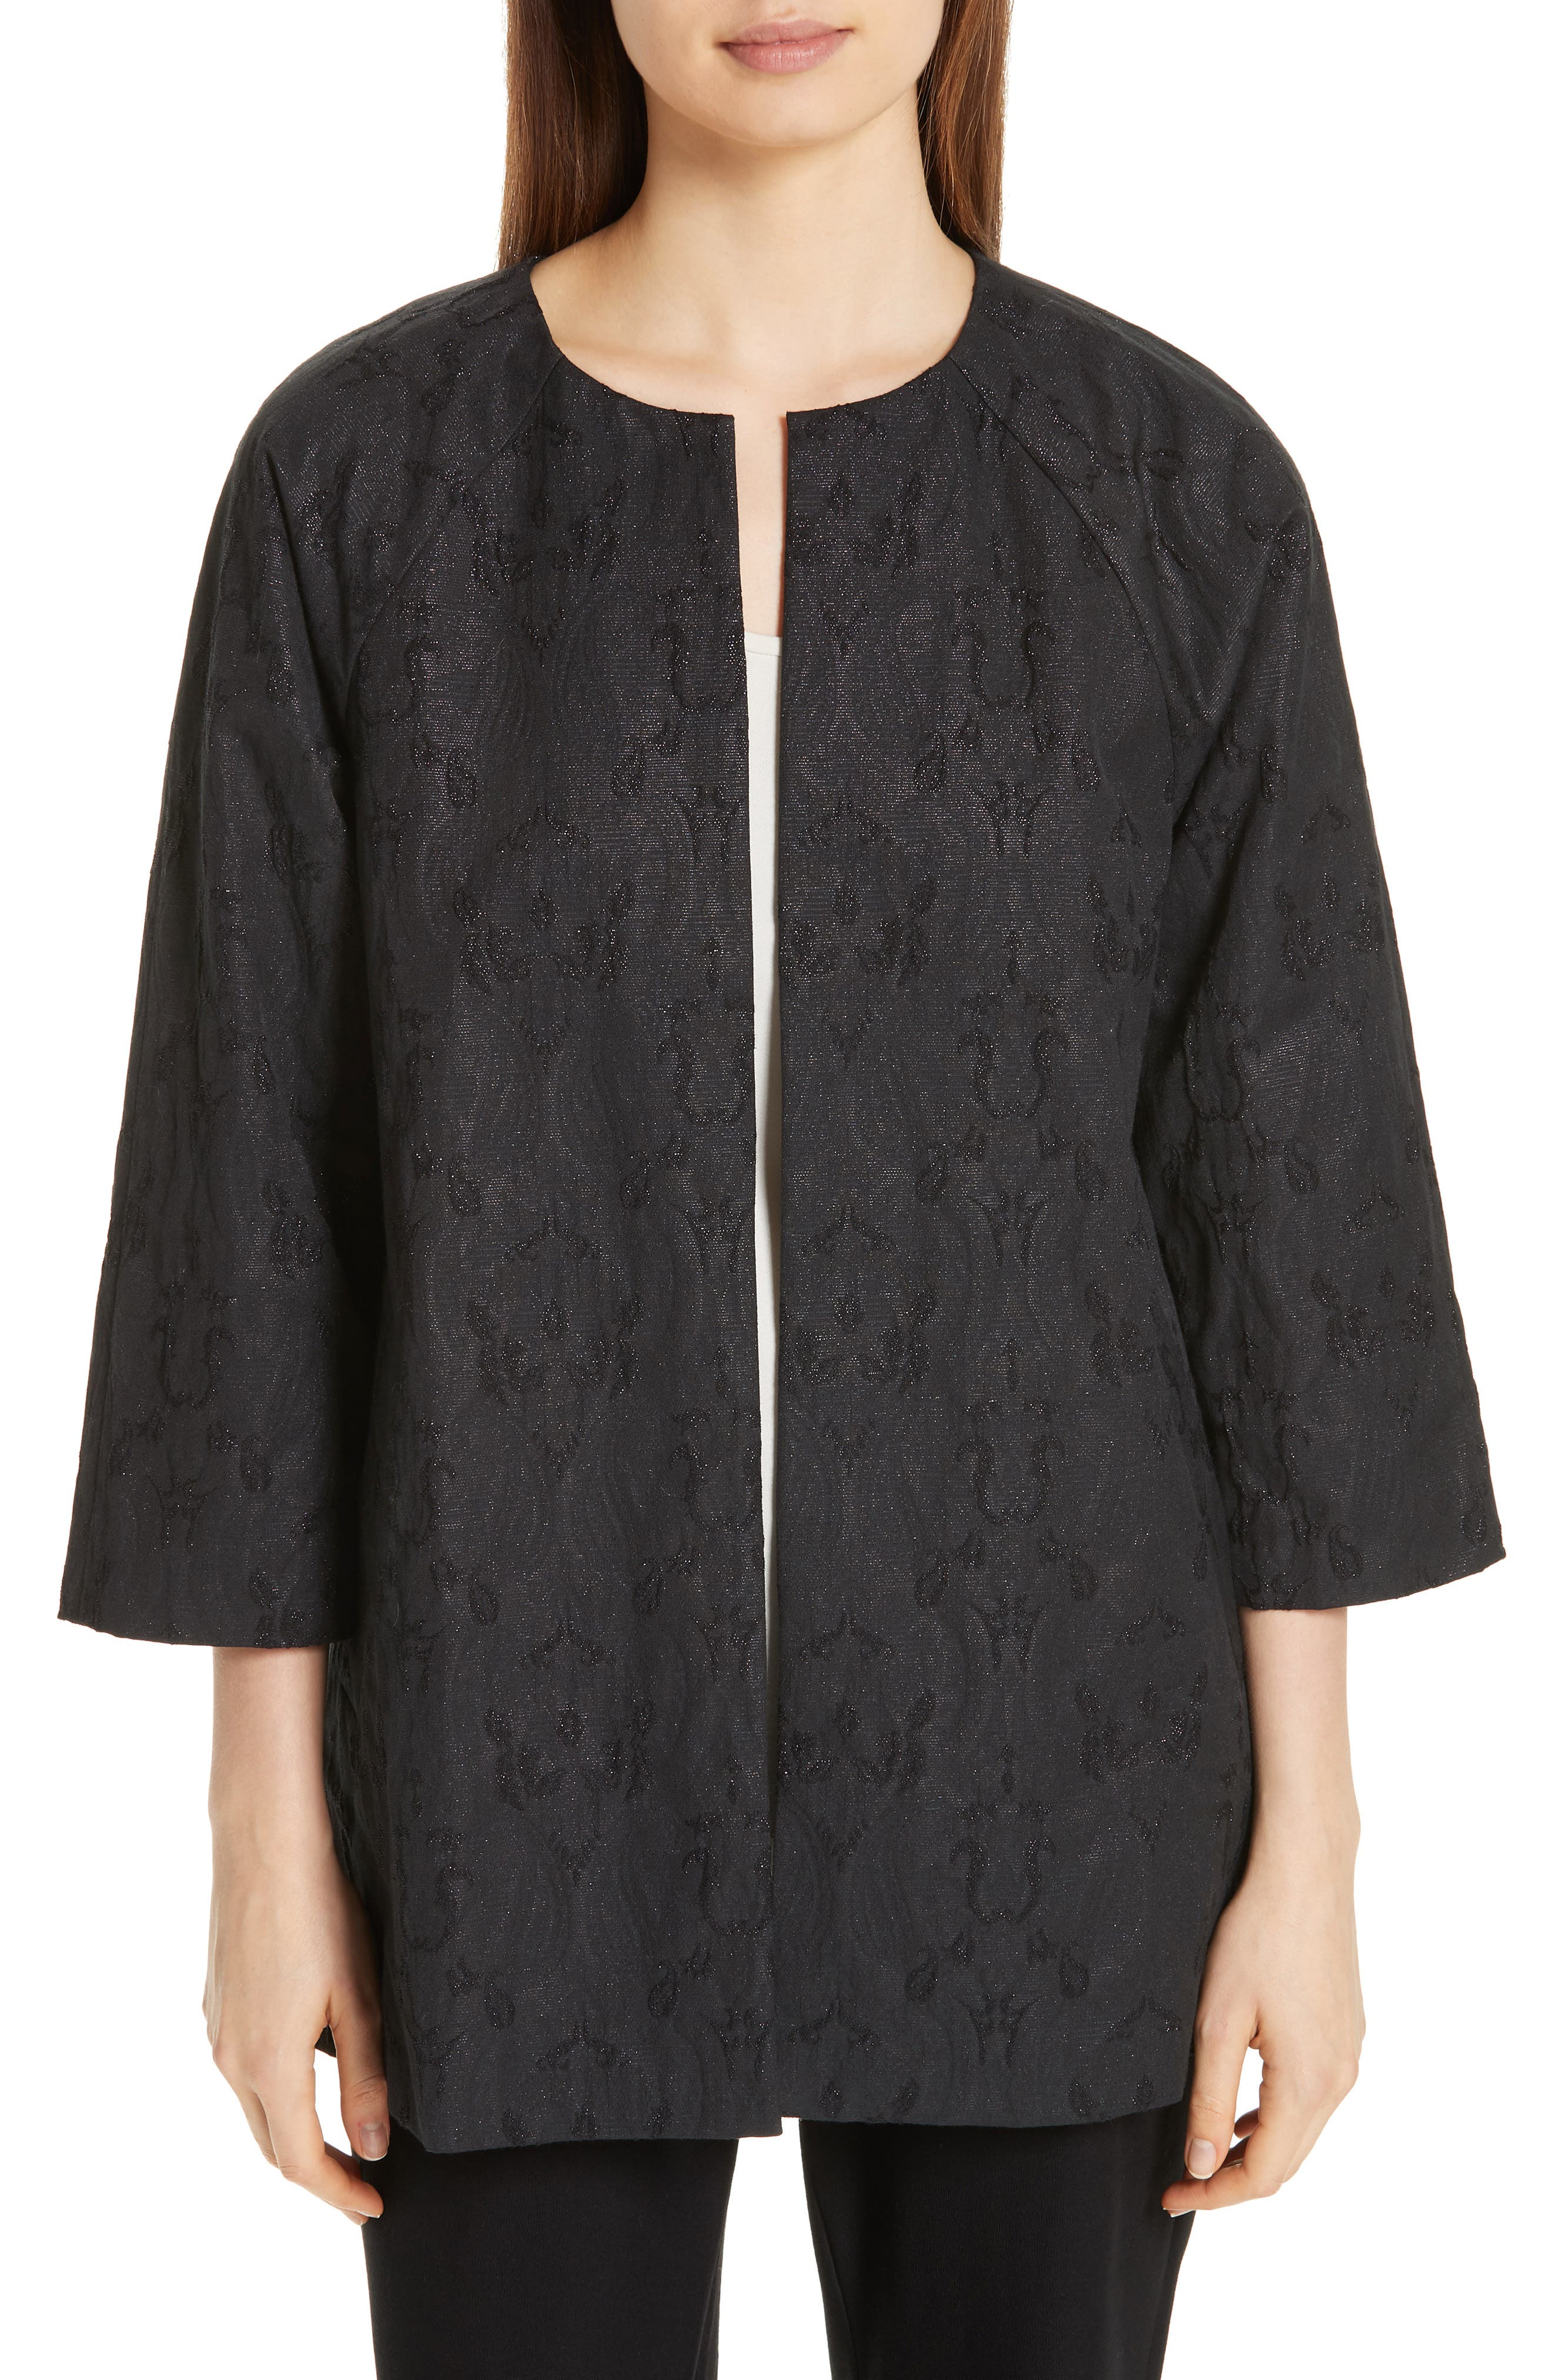 EILEEN FISHER Metallic Jacquard Collarless Jacket, Main, color, BLACK